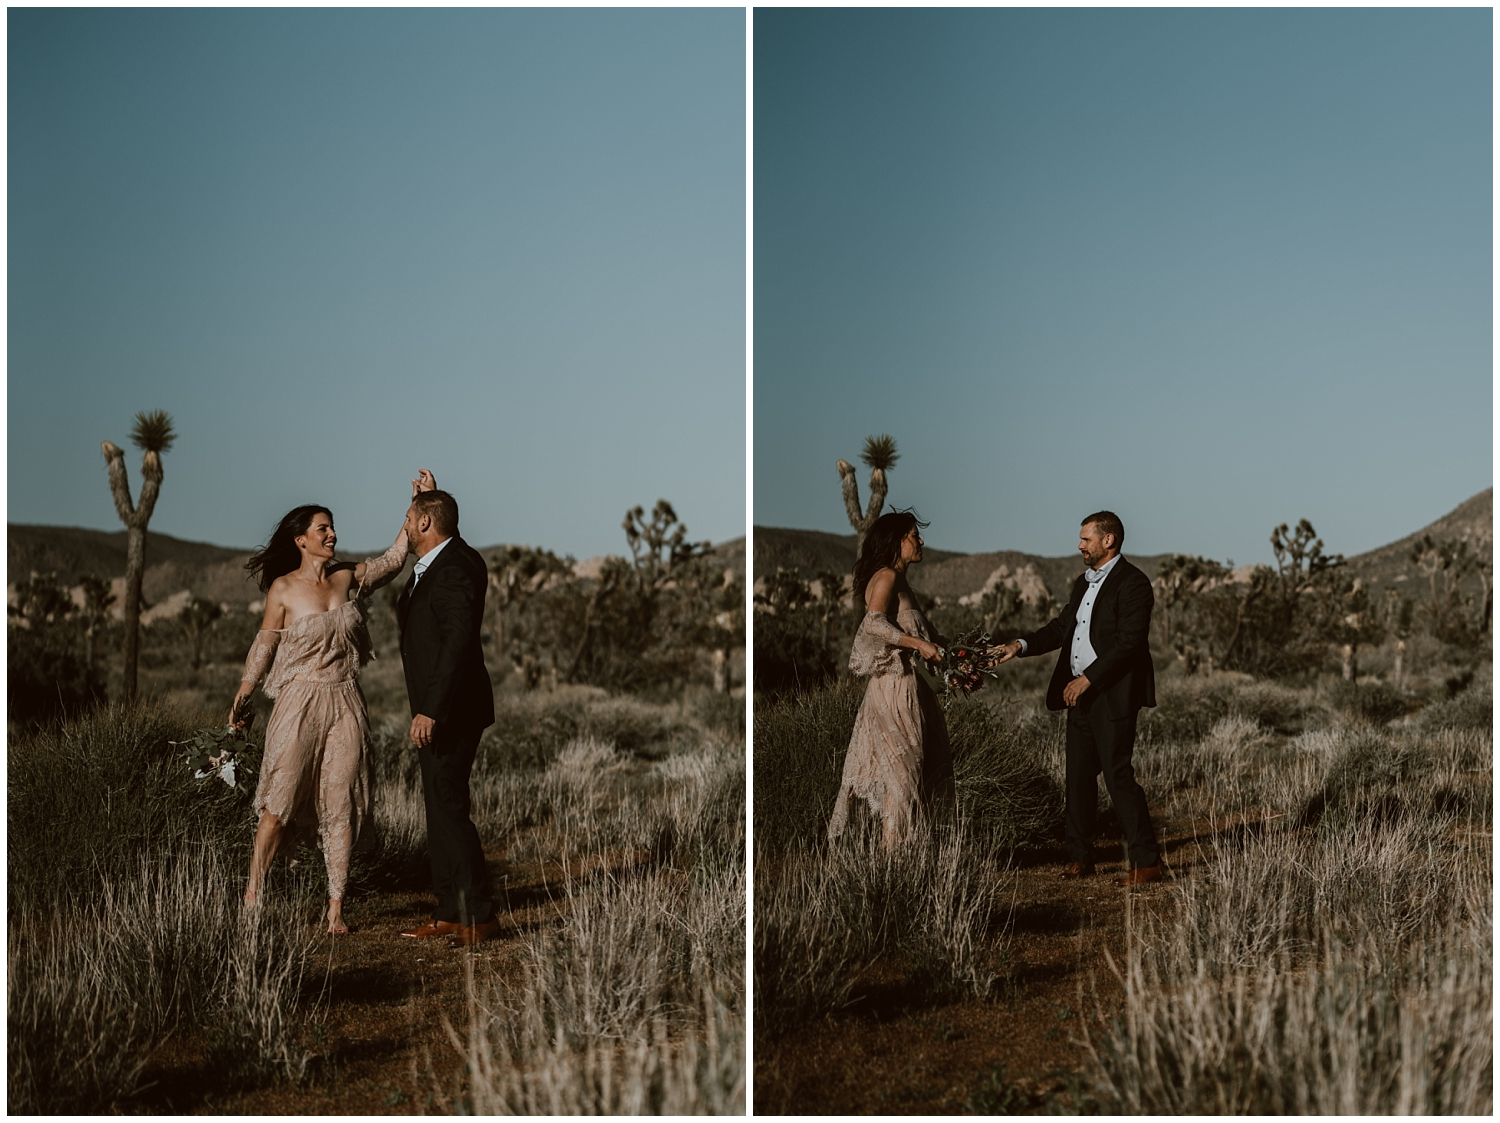 Cap-Rock-Joshua-Tree-Elopement-0014.jpg